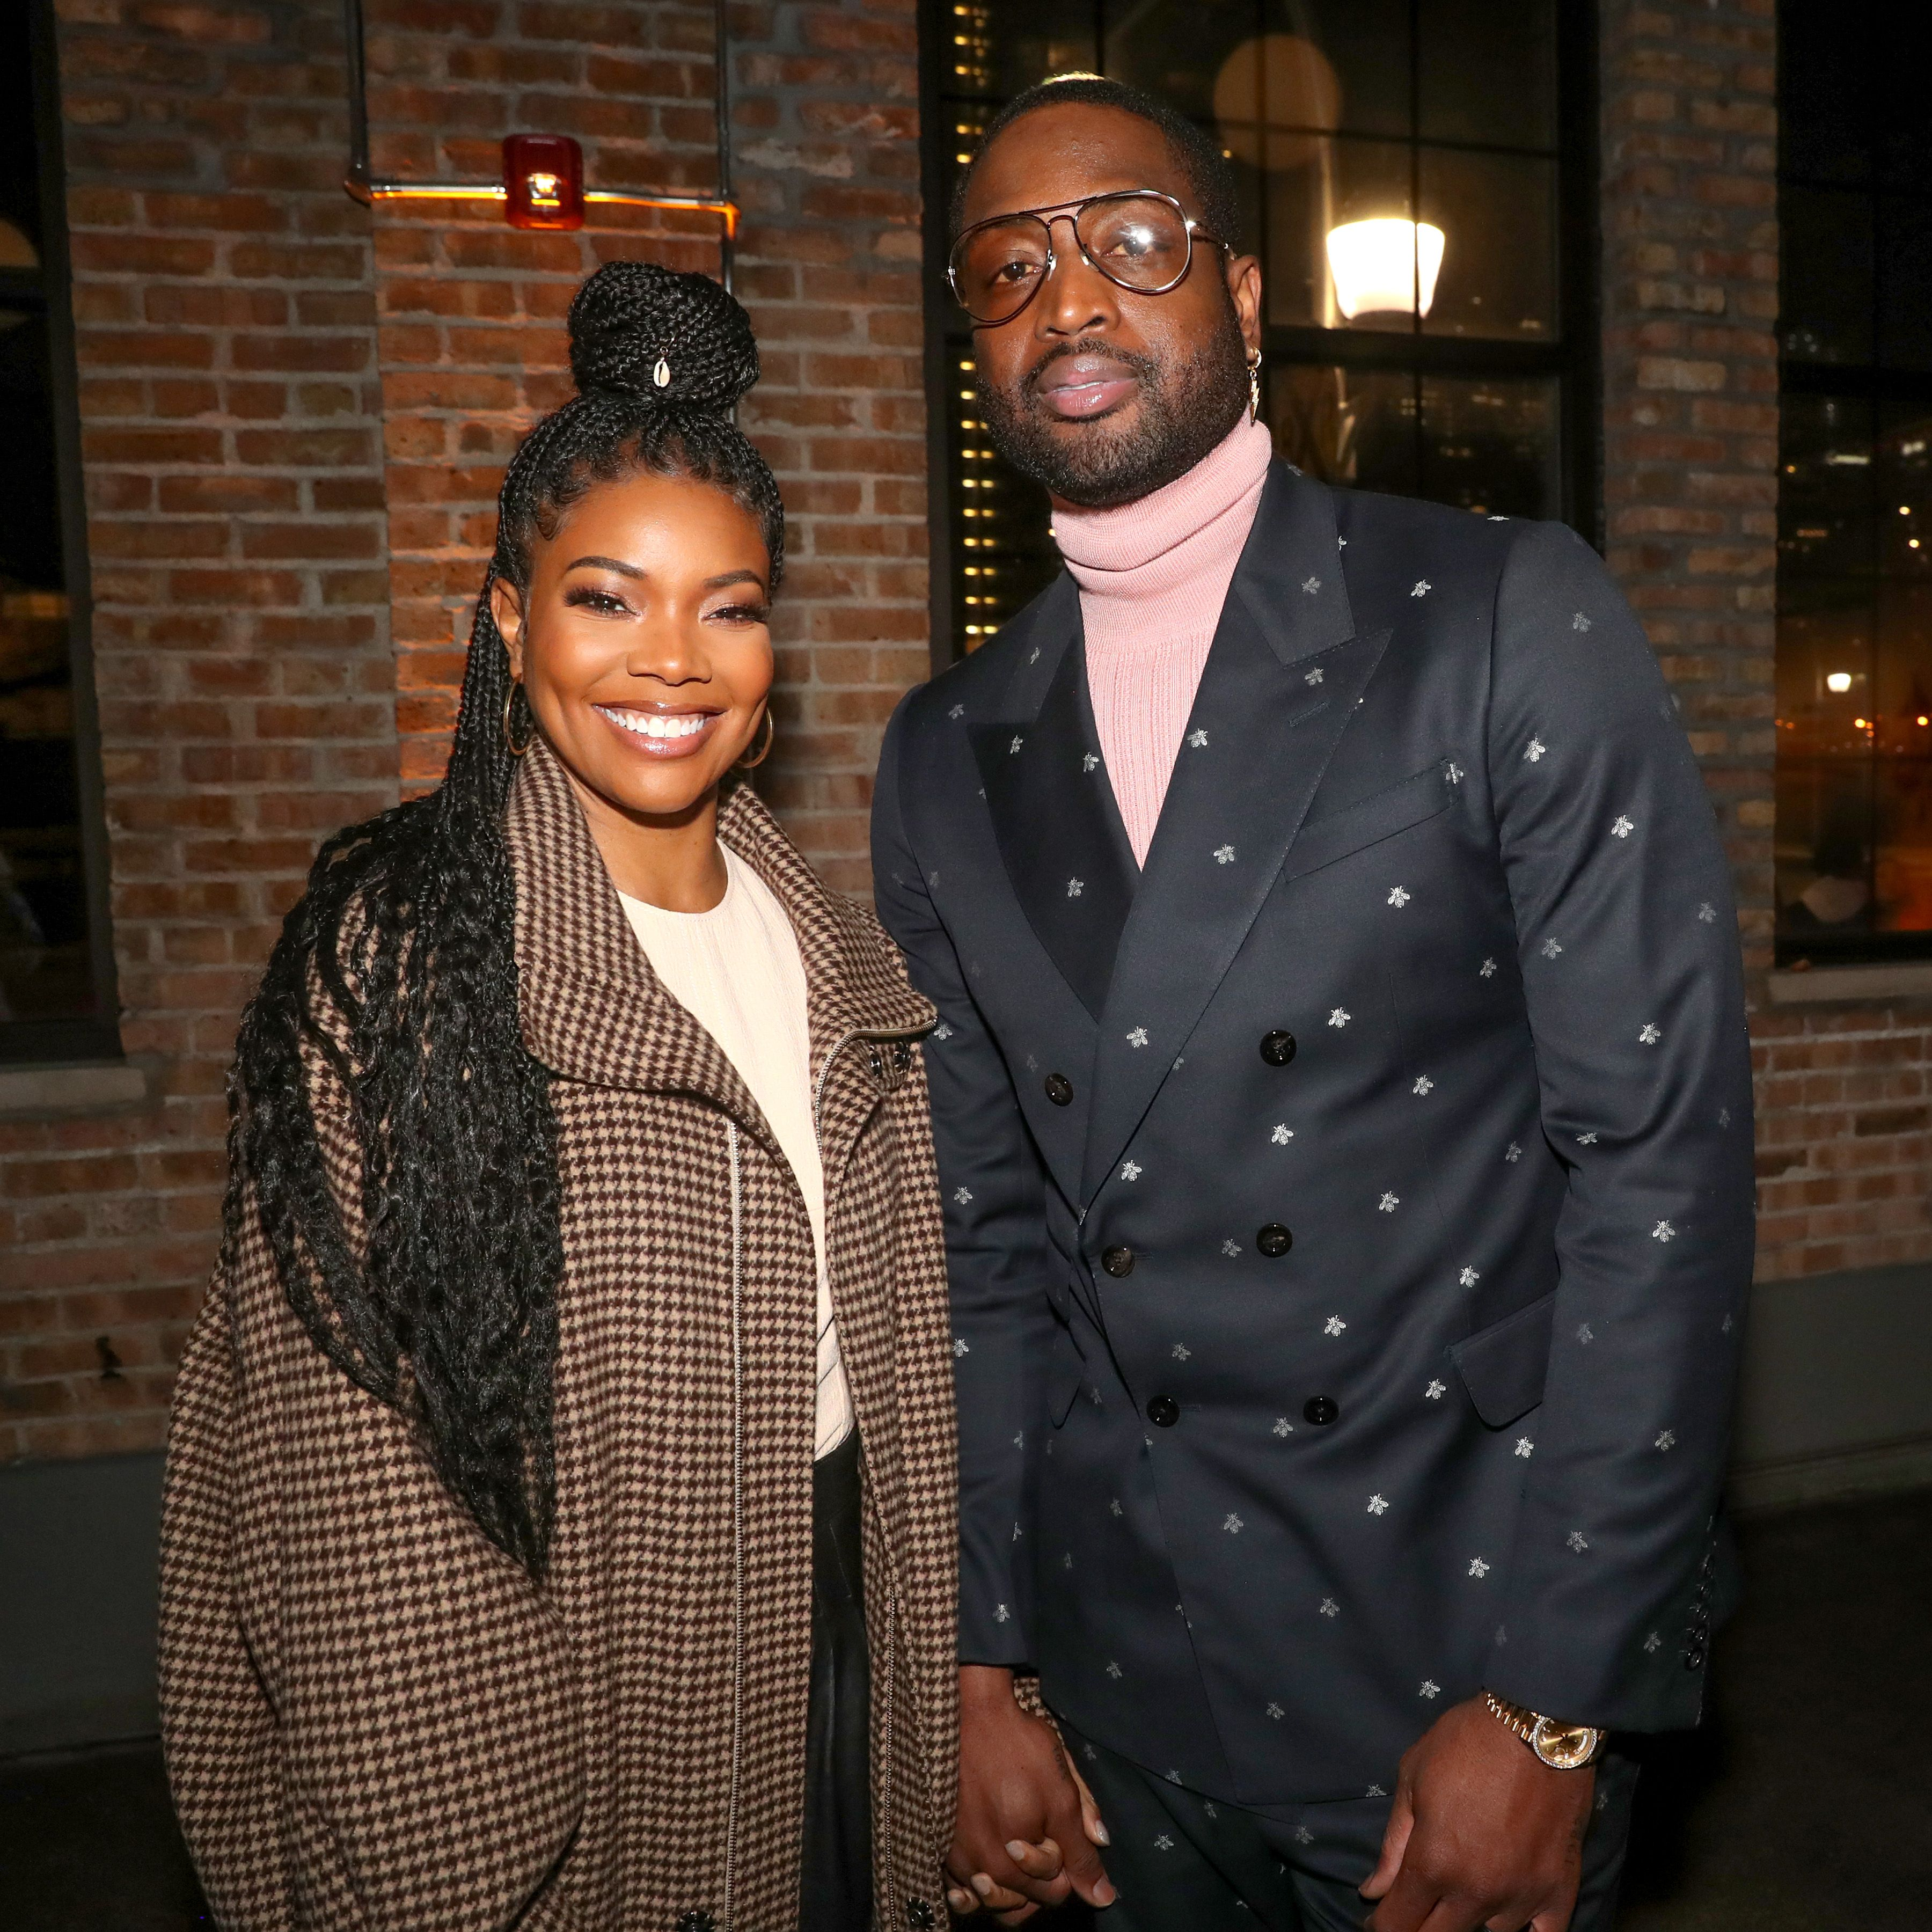 Gabrielle Union and Dwyane Wade at Stance Spades At NBA All-Star 2020 at City Hall on February 15, 2020 | Photo: Getty Images